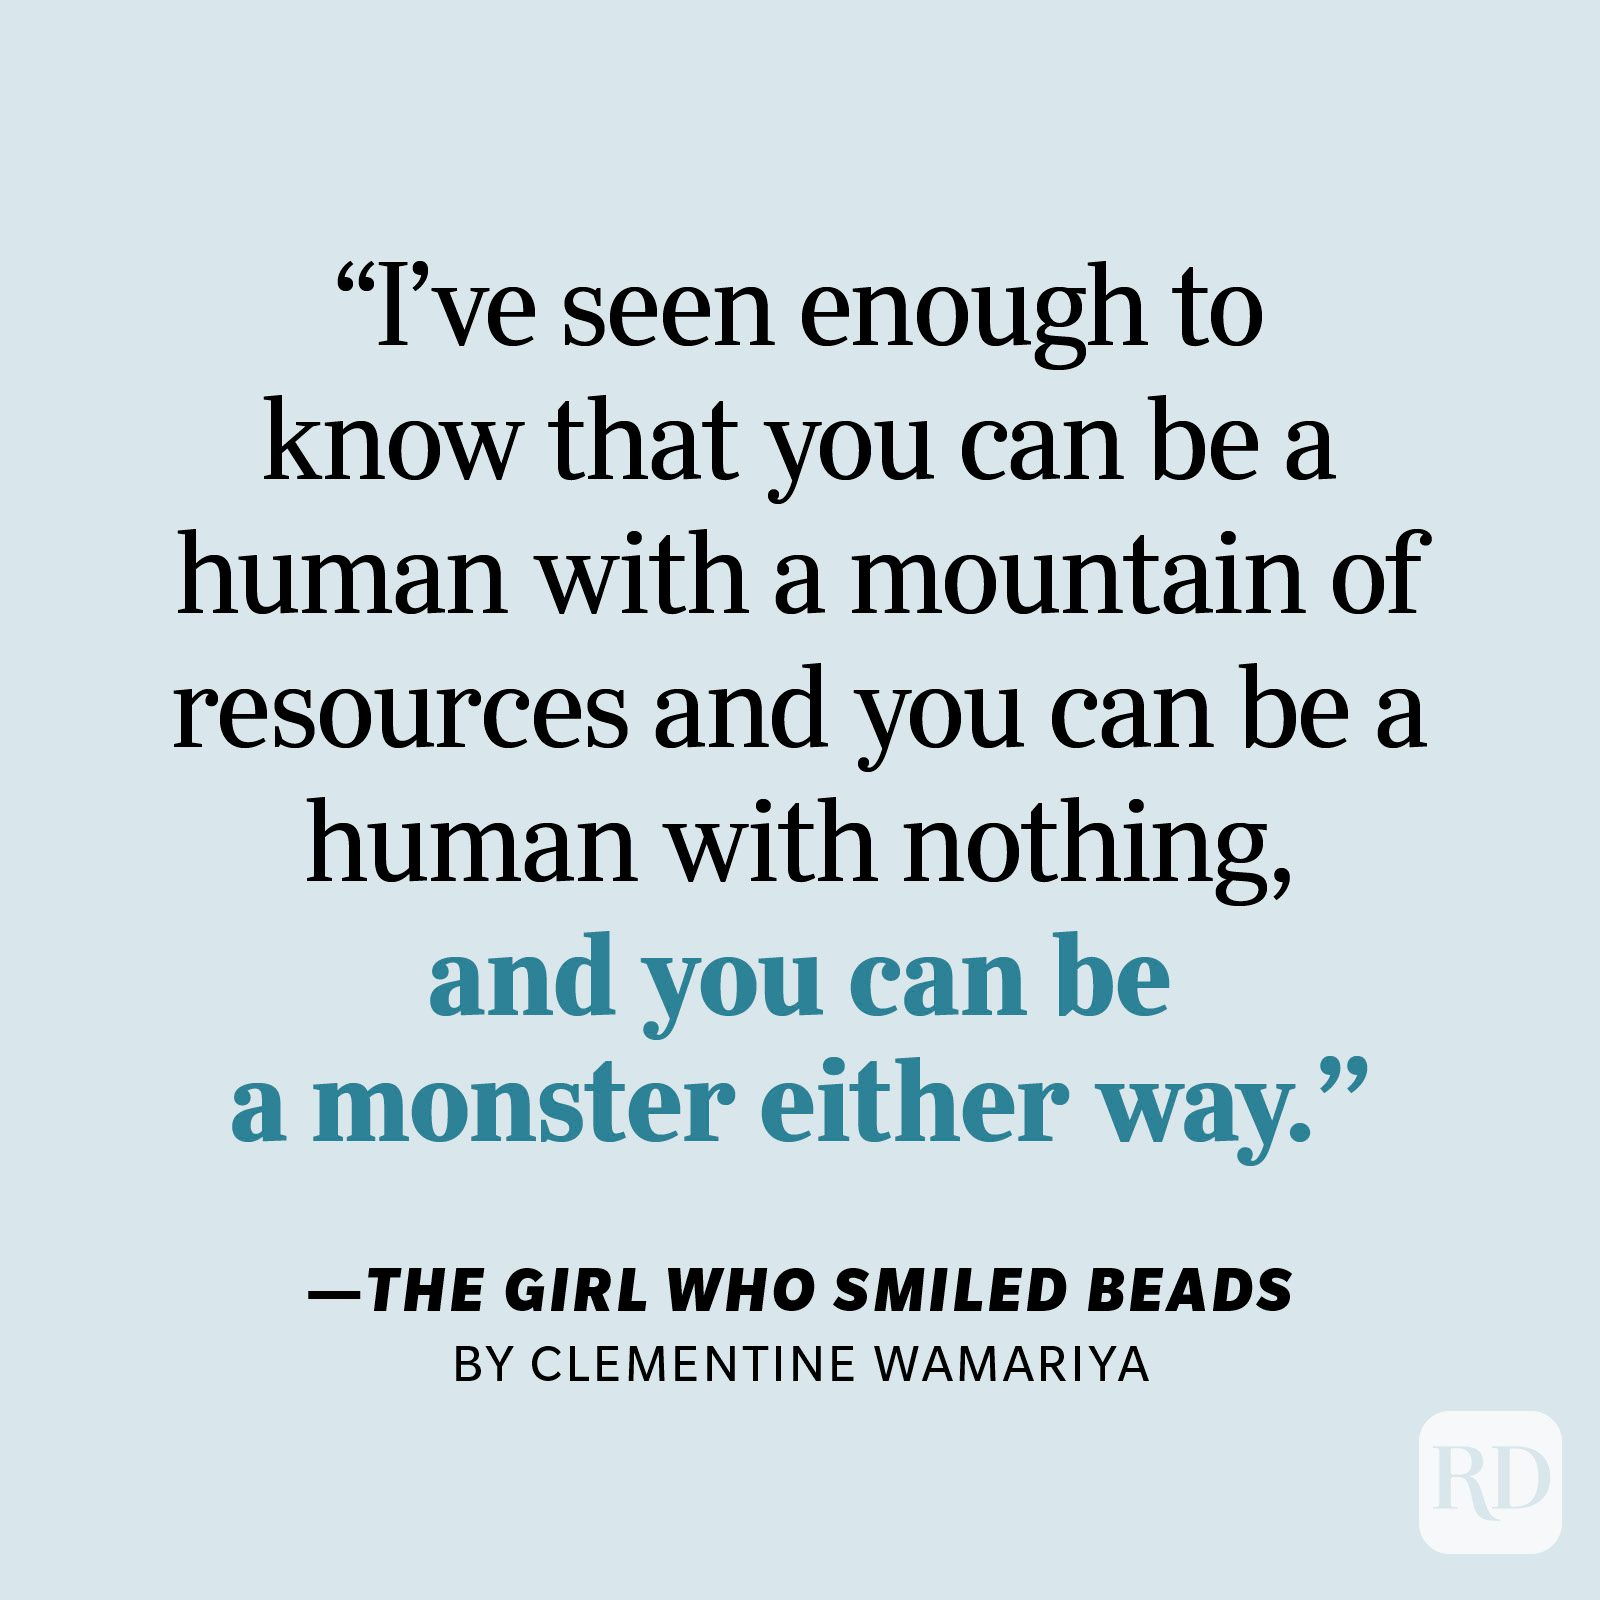 """The Girl Who Smiled Beads by Clemantine Wamariya     """"I've seen enough to know that you can be a human with a mountain of resources and you can be a human with nothing, and you can be a monster either way."""""""